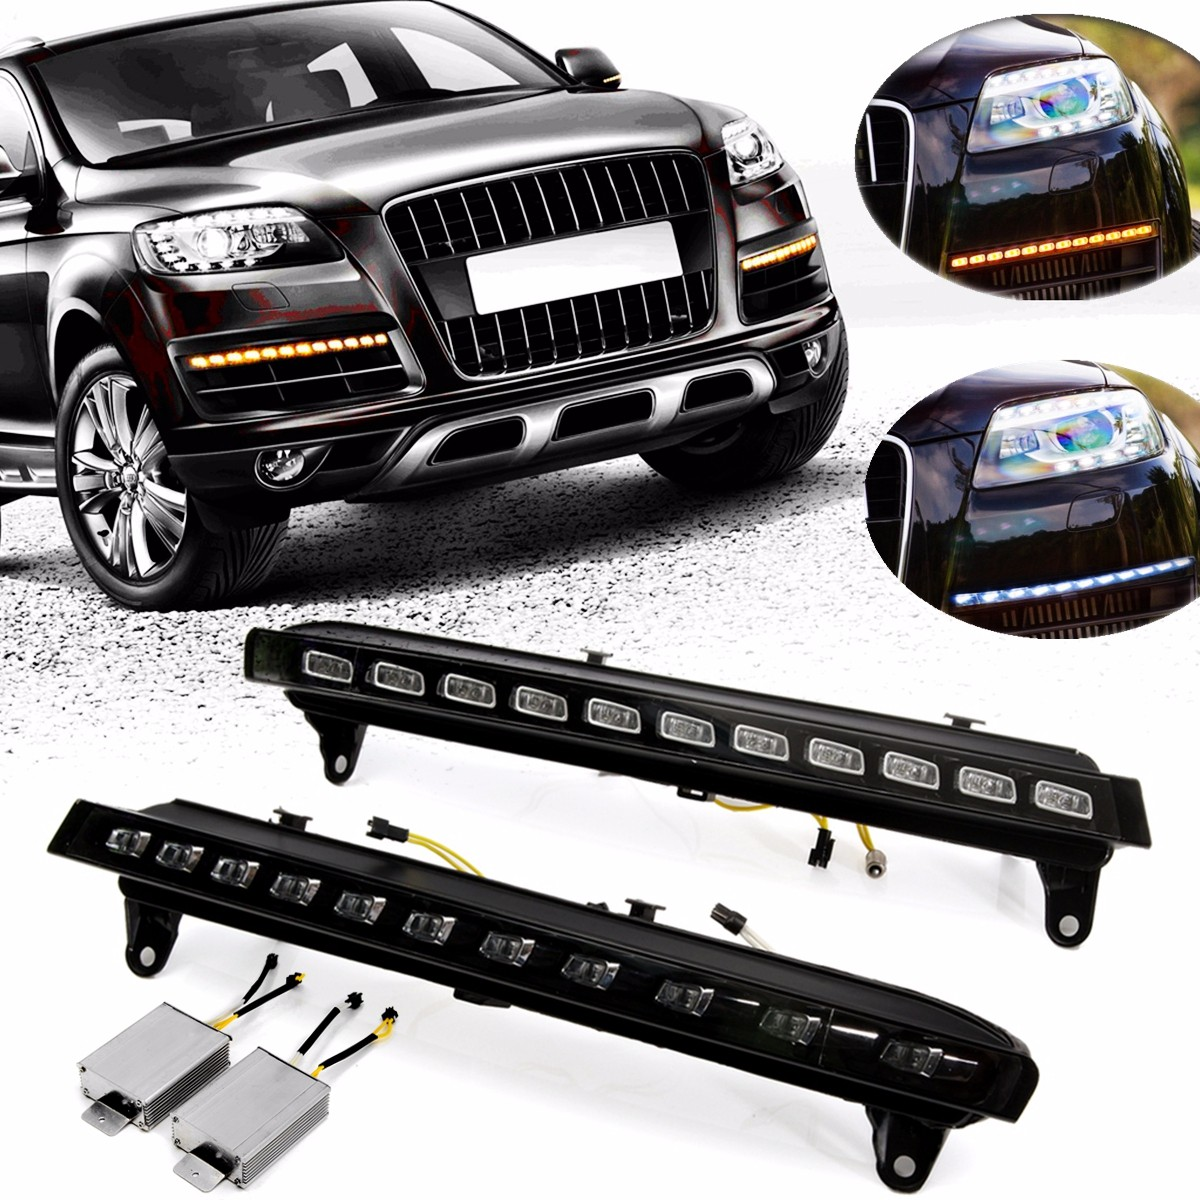 2Pcs L+R Car LED Daytime Running White DRL Fog Light W/ Amber Indicator Turn Signal Lamp for Audi Q7 2007 2008 2009